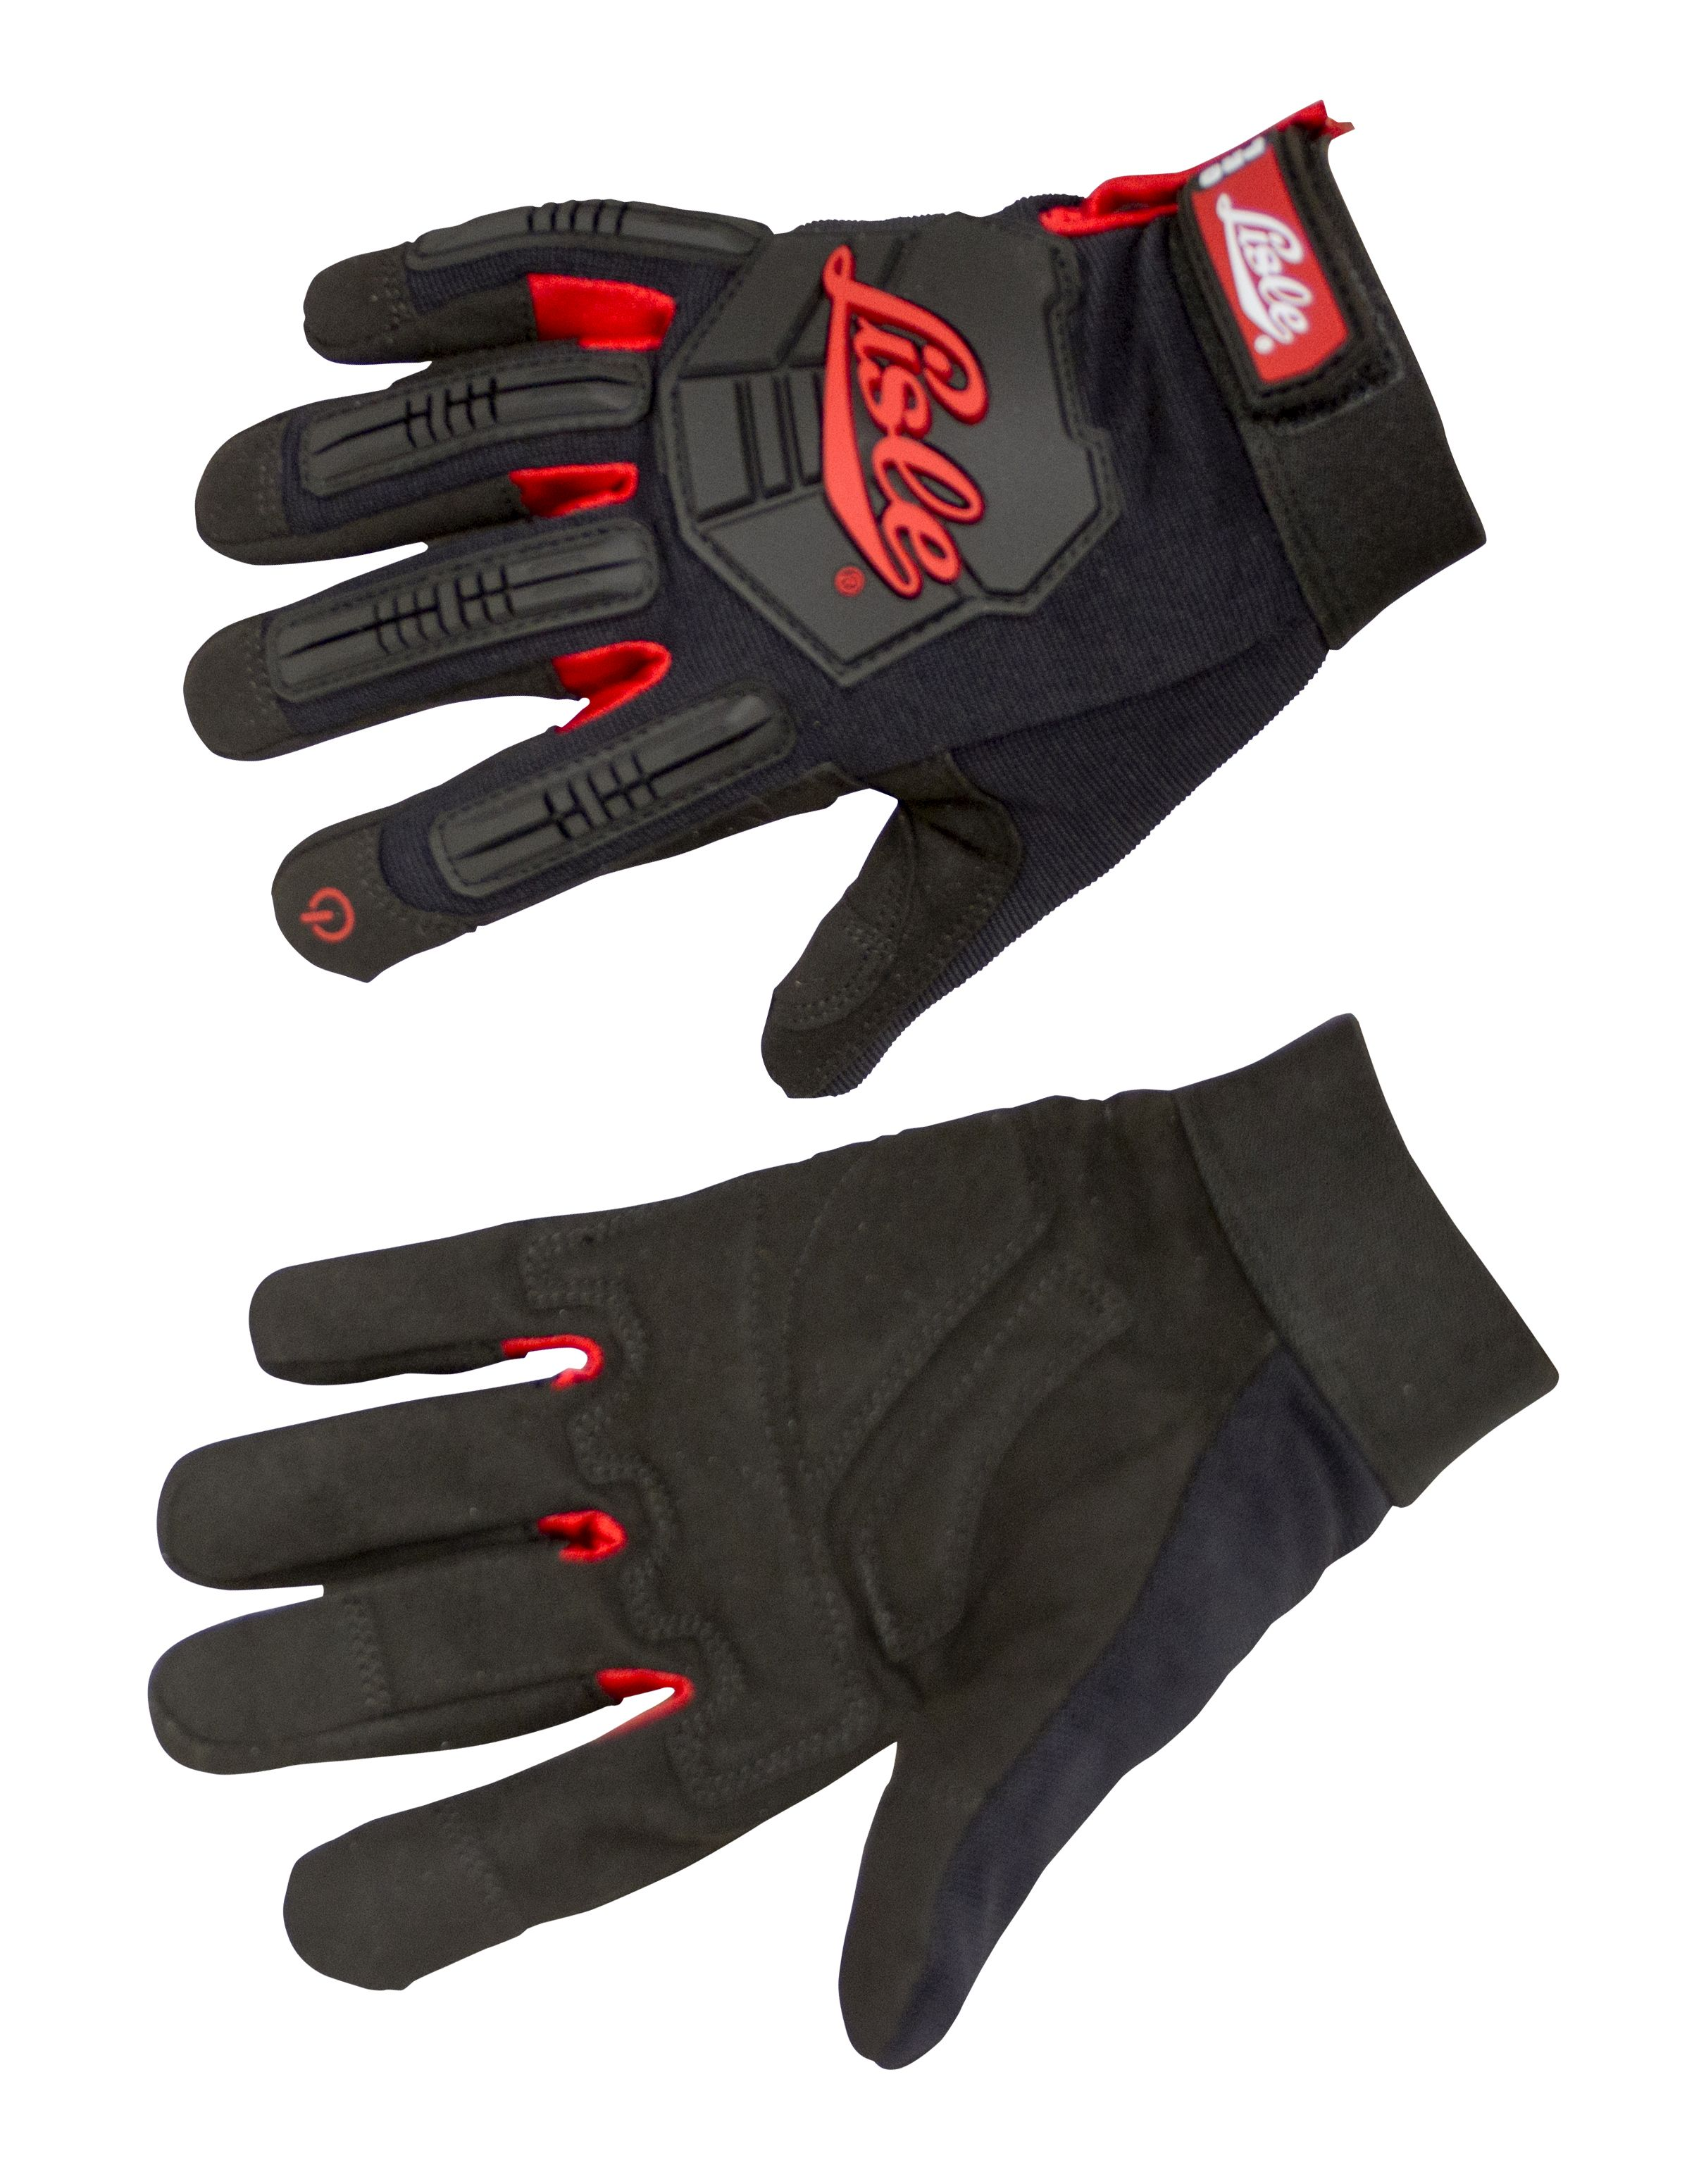 Lisle Corp.'s New Gloves Are Designed for Touch Screens